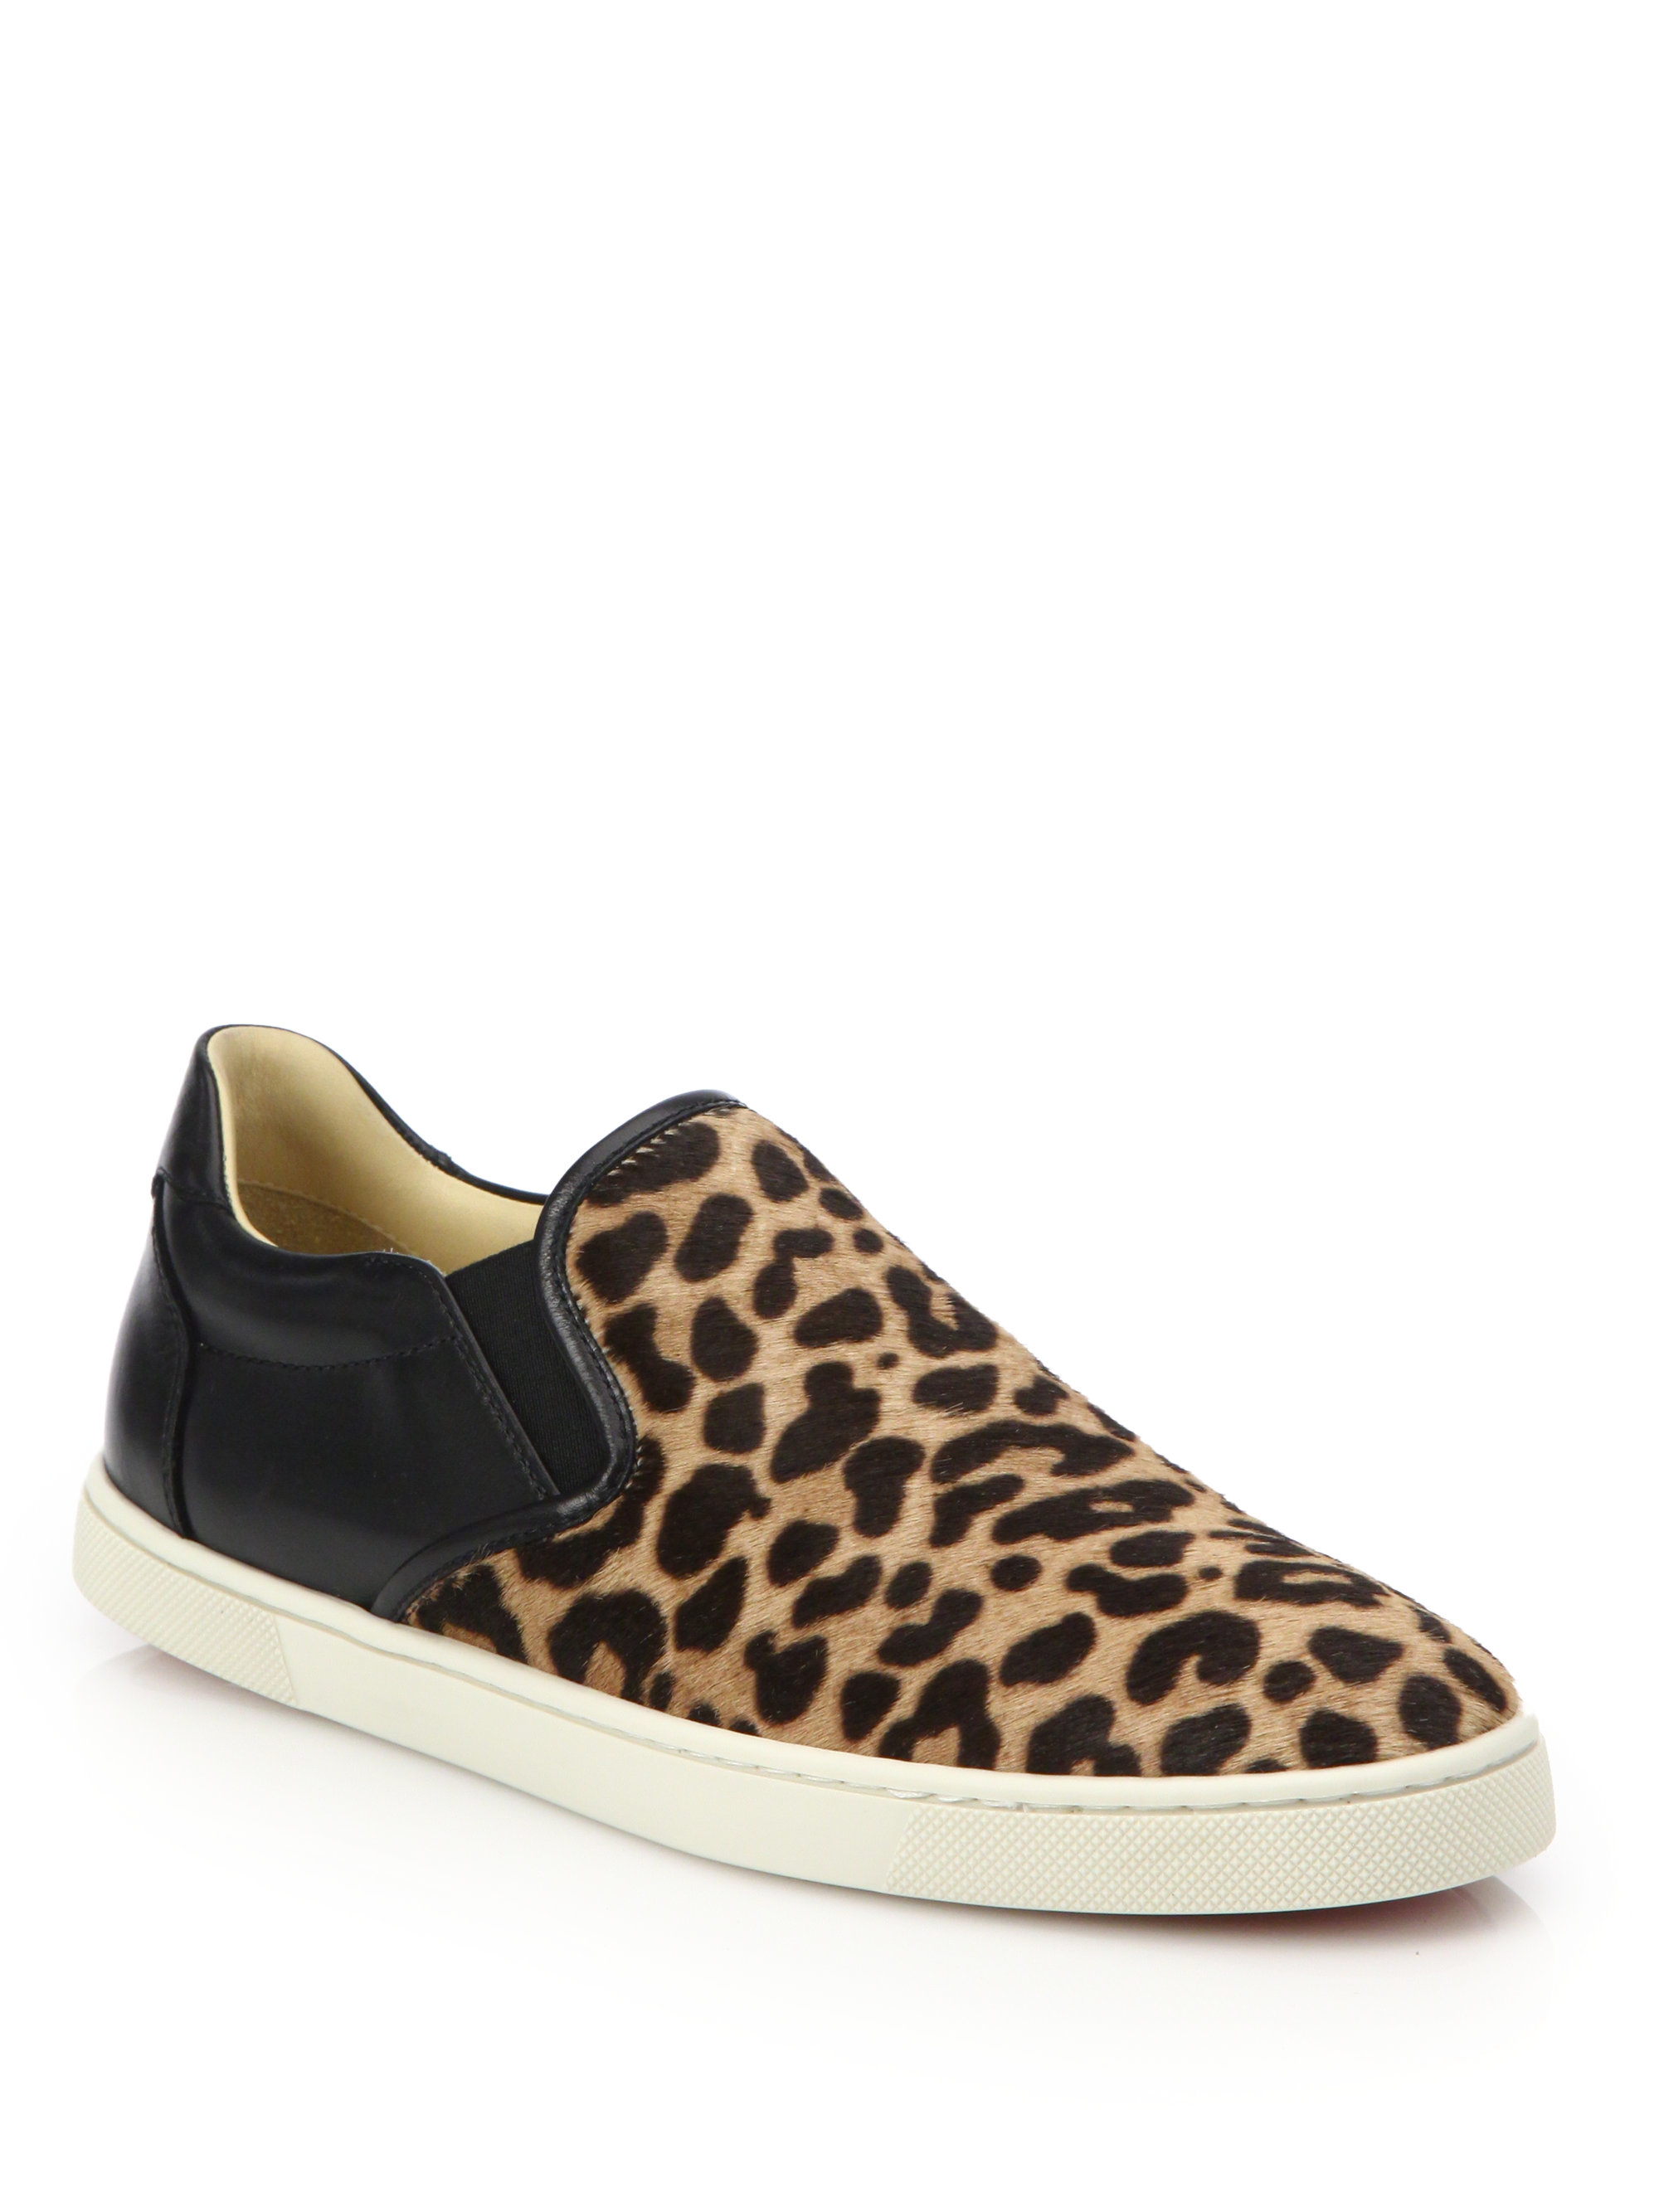 Shop for leopard shoes at reasonarchivessx.cf Visit reasonarchivessx.cf to find clothing, accessories, shoes, cosmetics & more. The Style of Your Life.